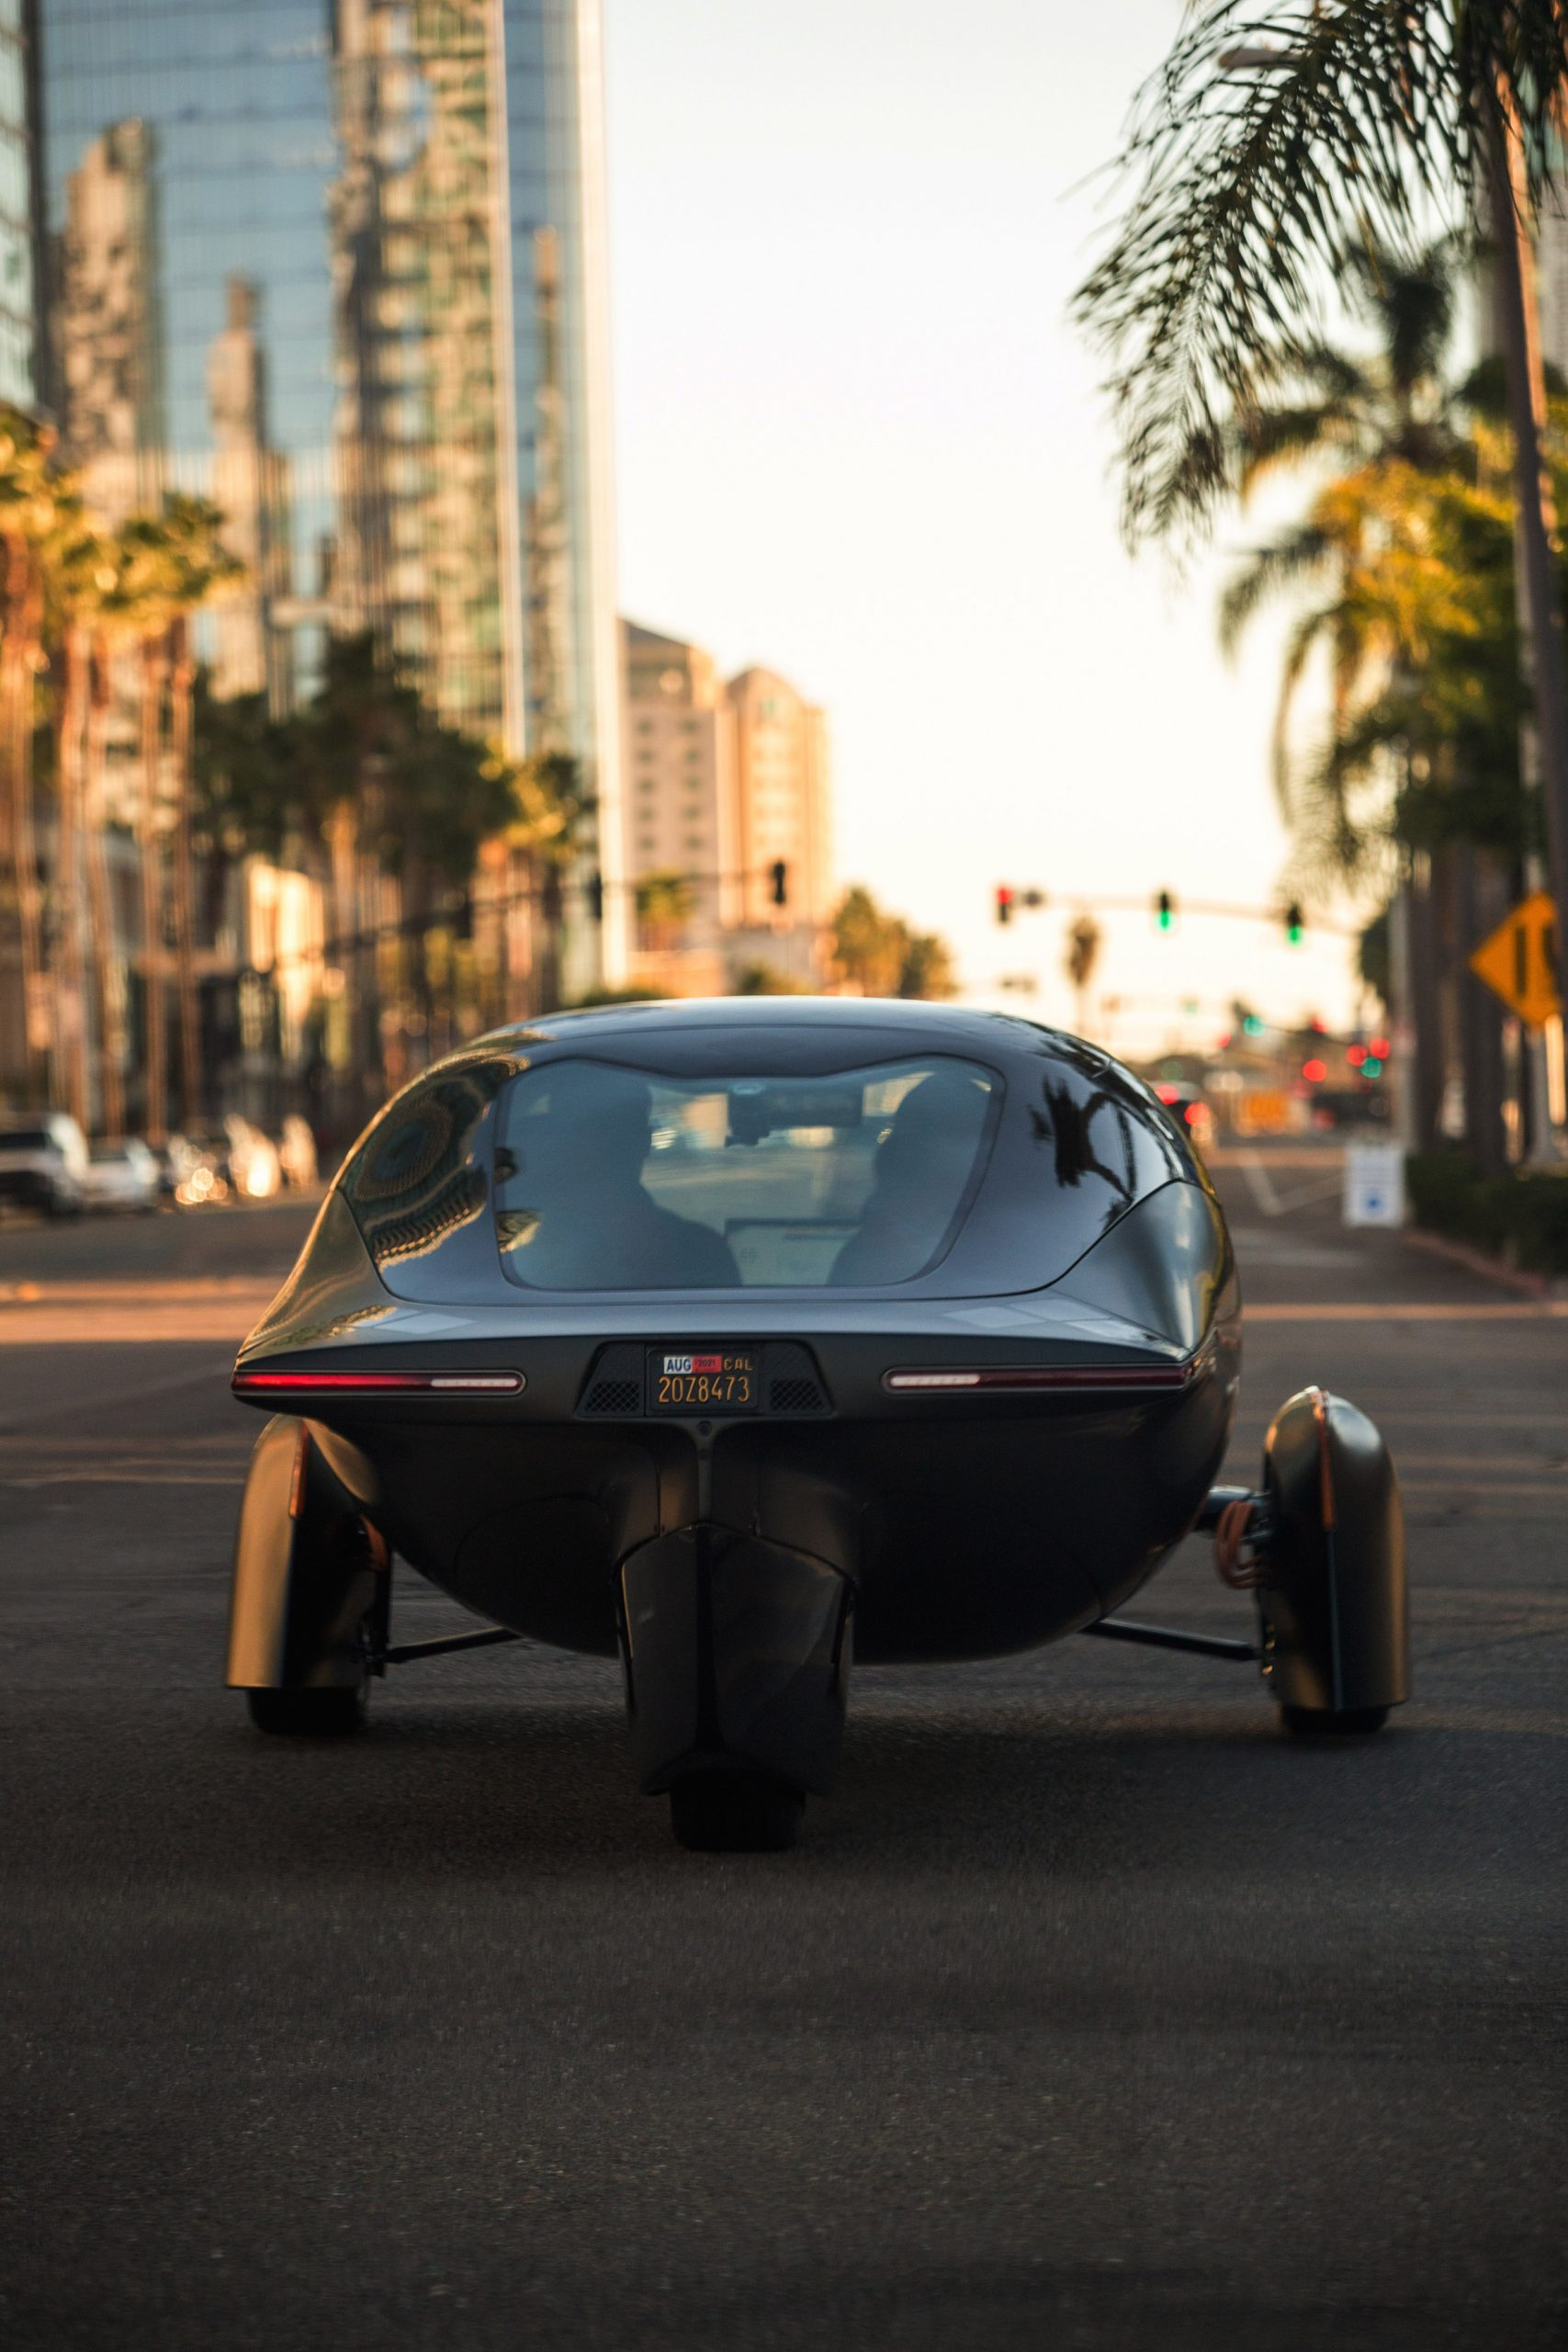 Rear view of the three-wheeled solar and electric Aptera vehicle